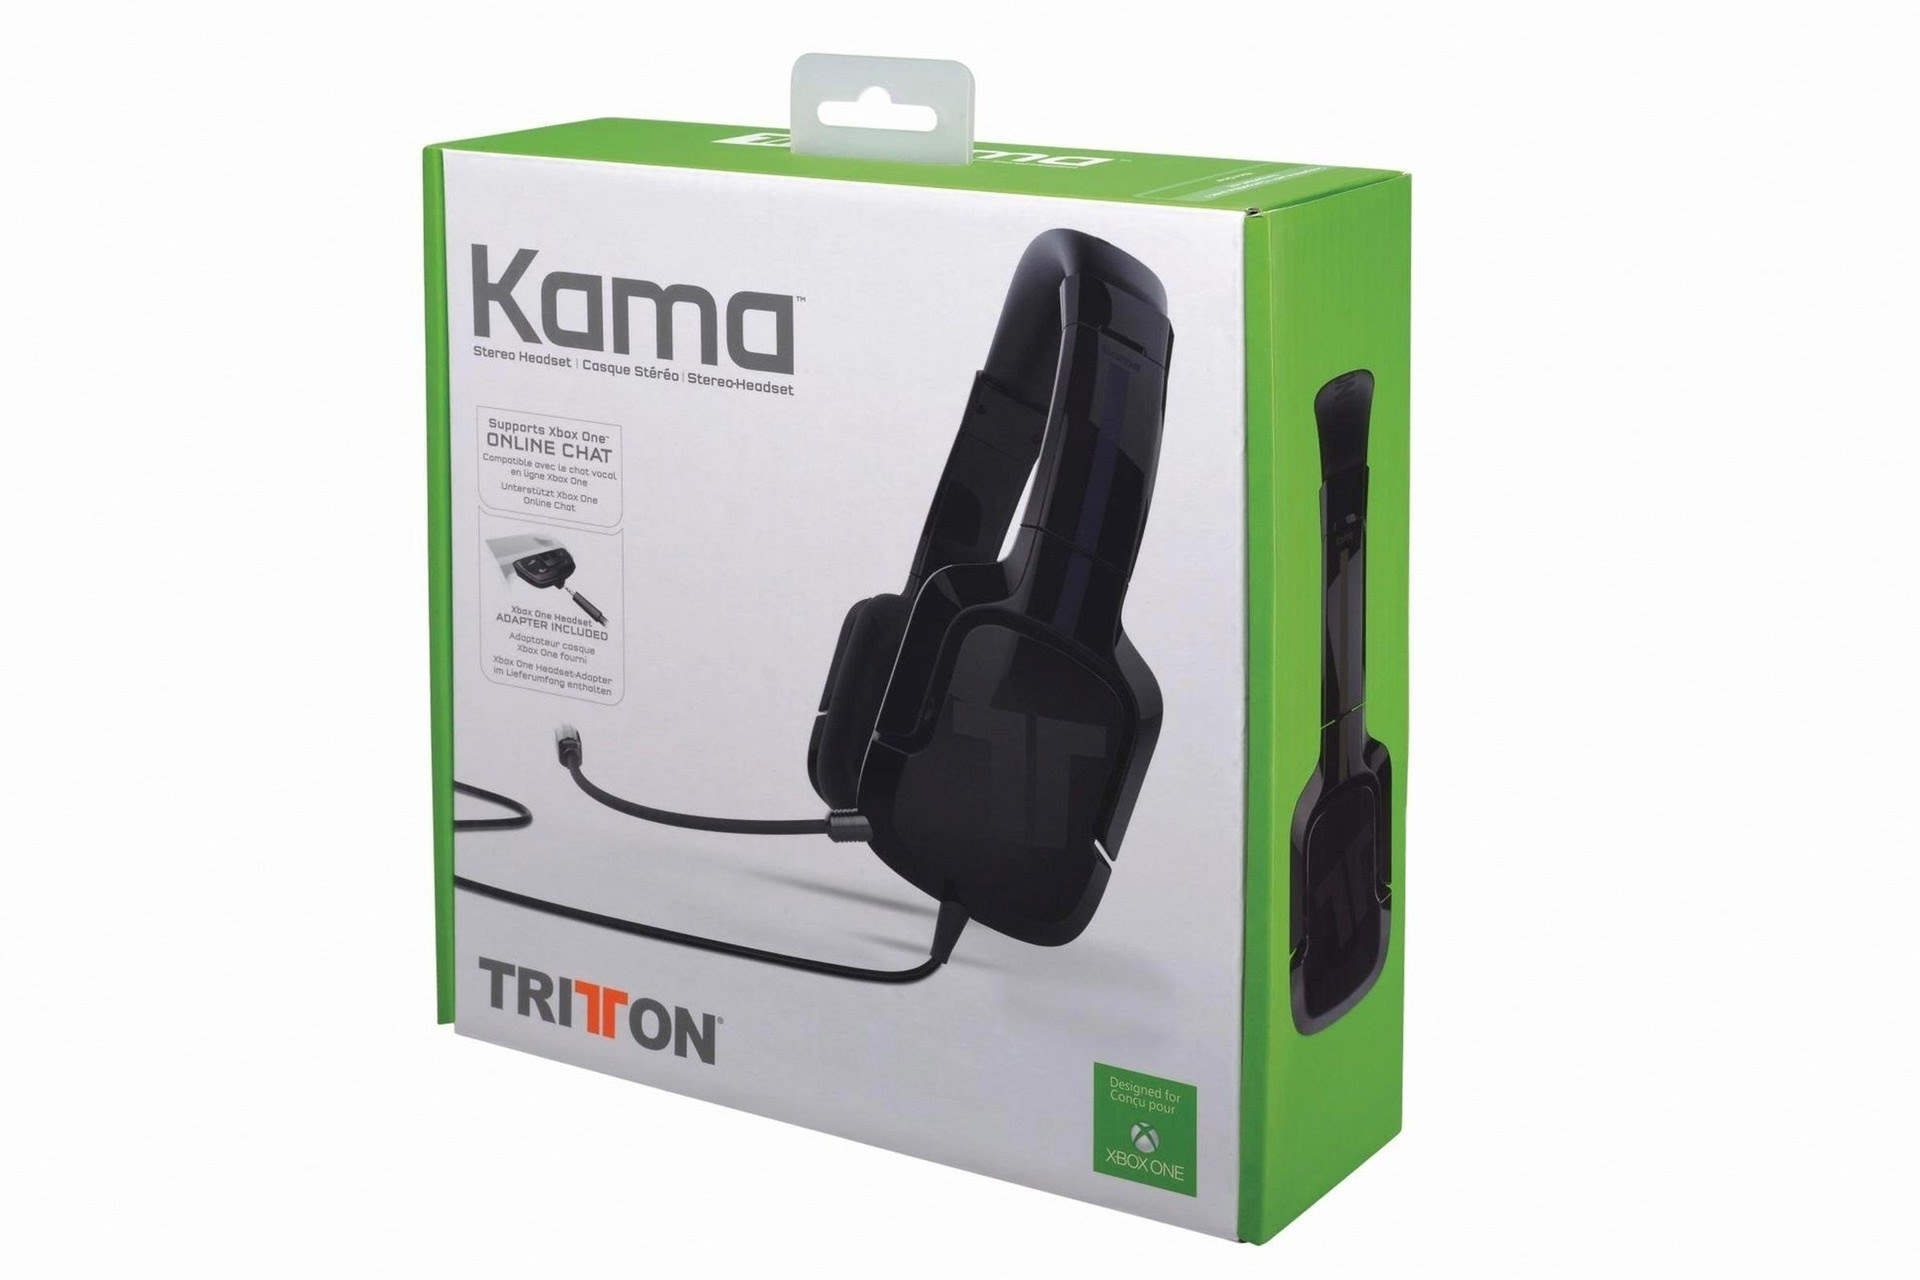 casque tritton kama xbox one